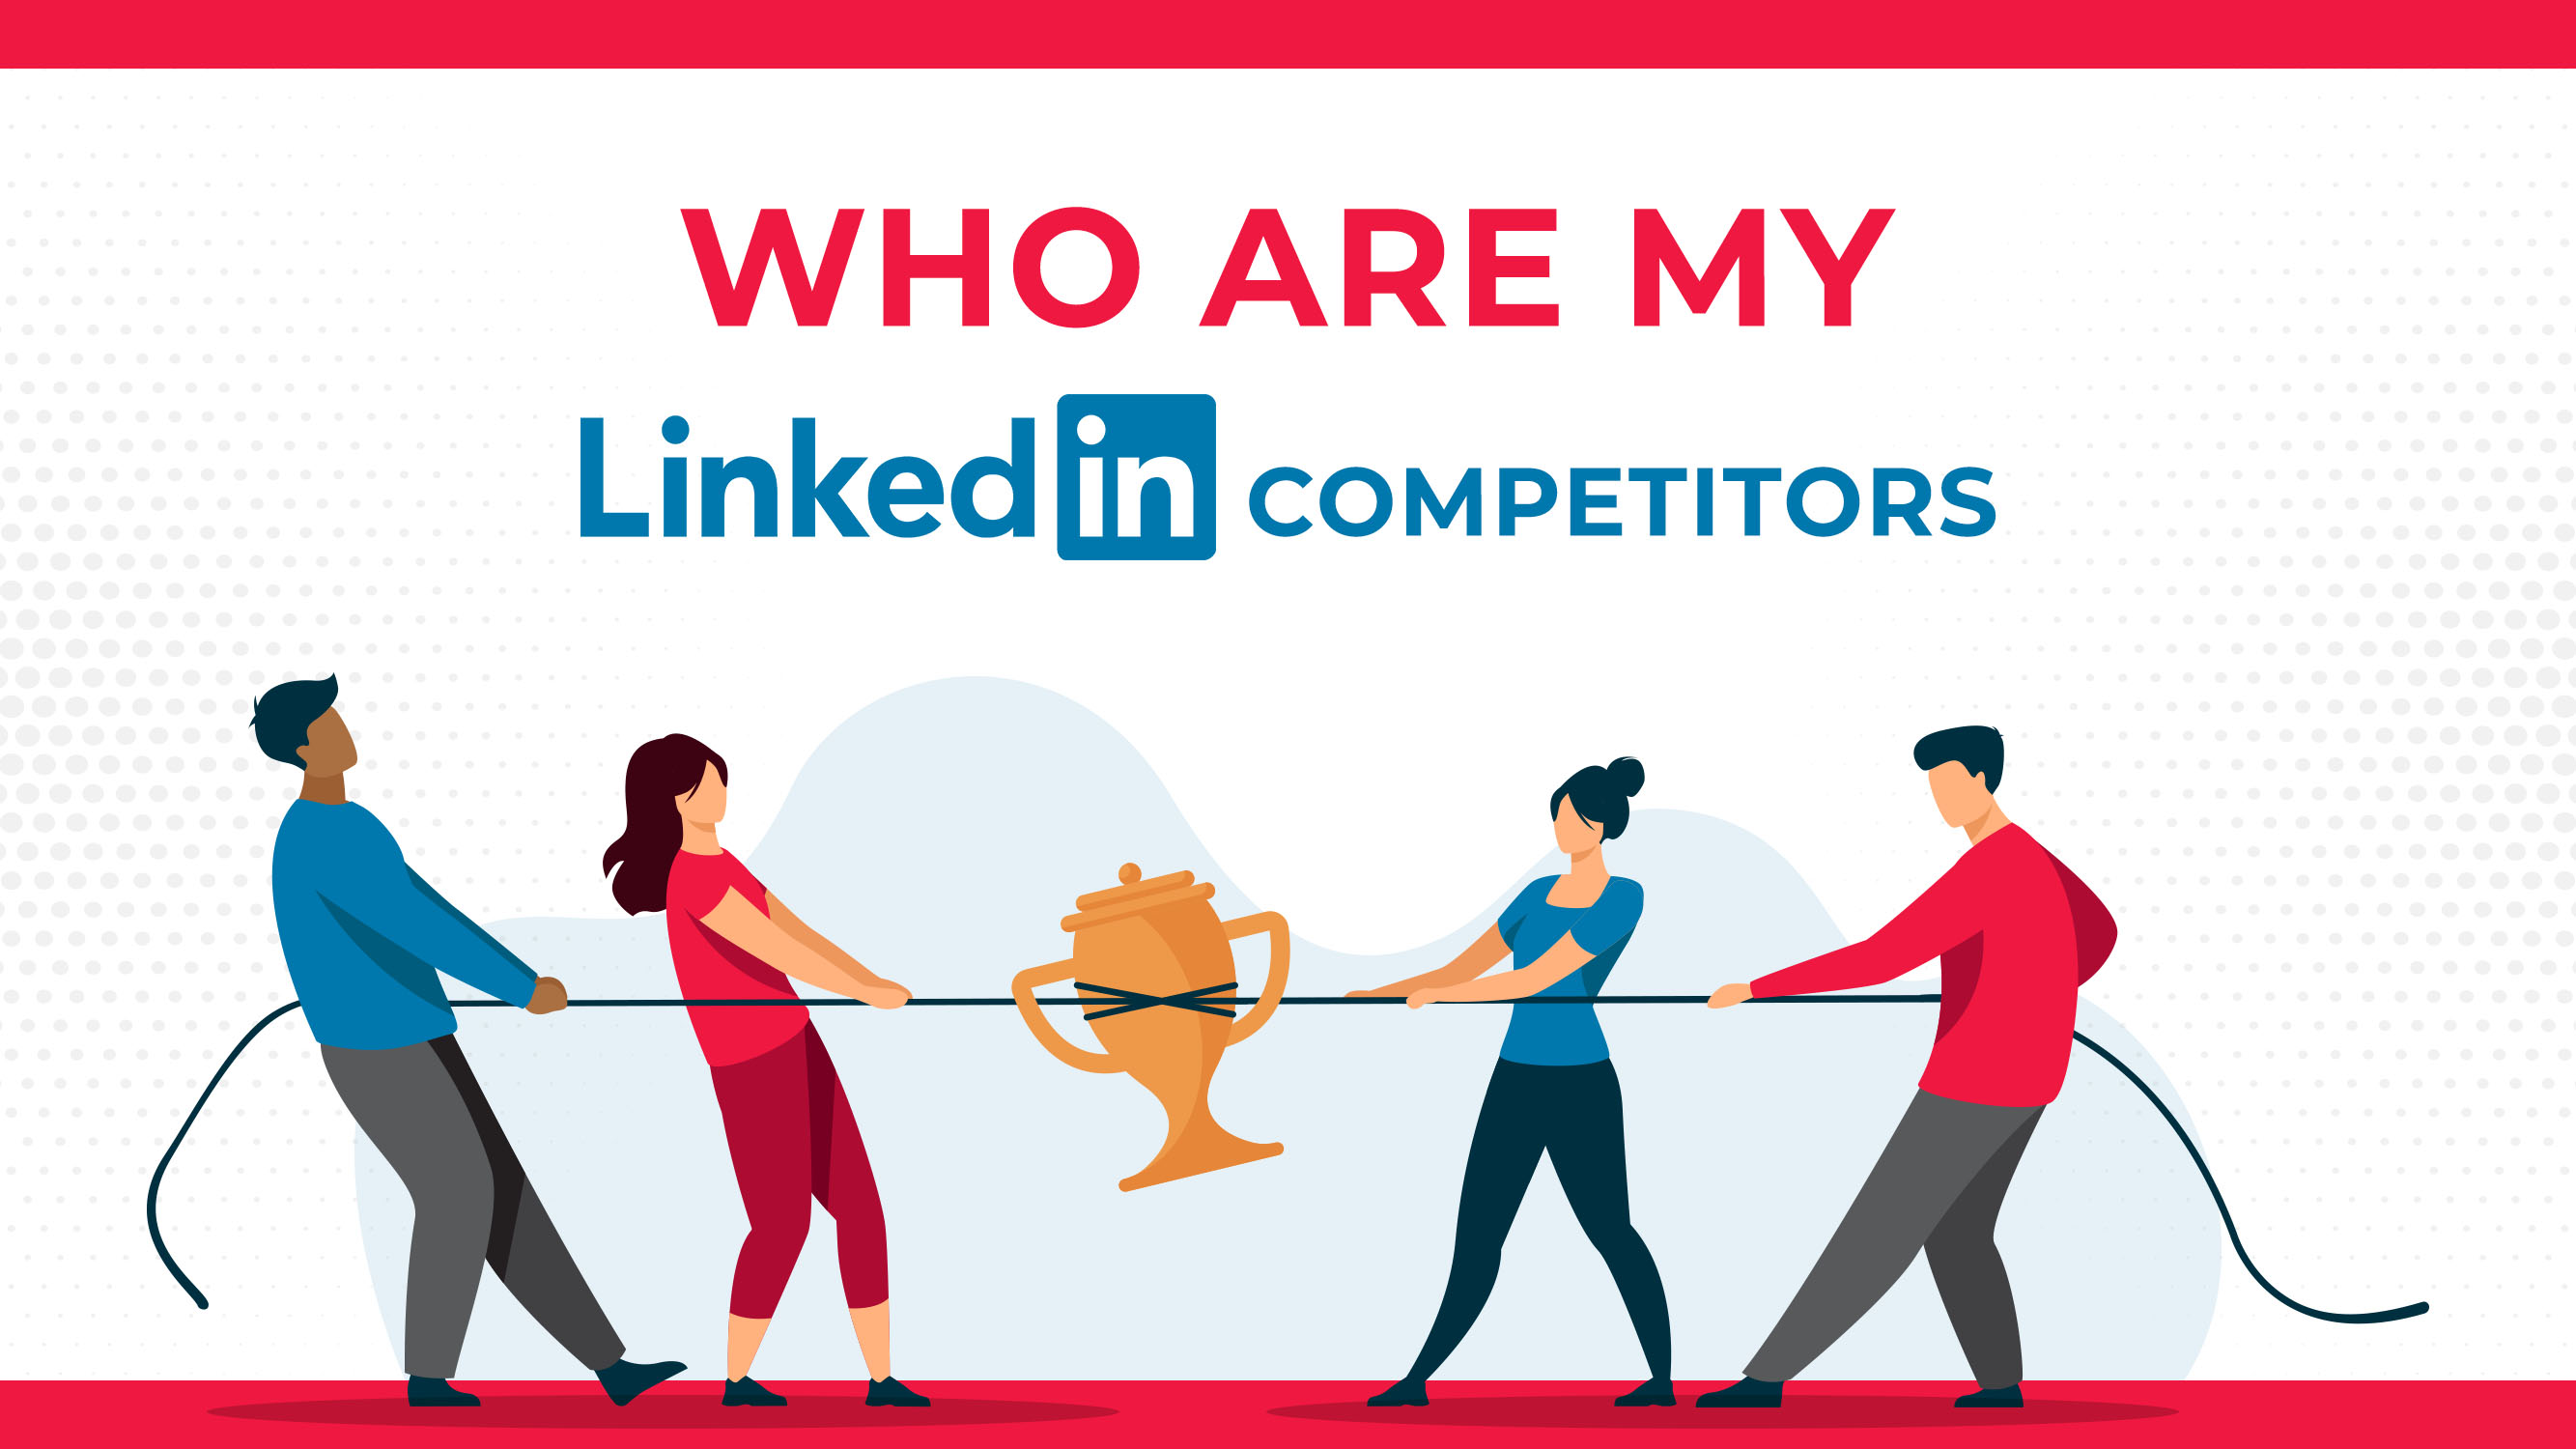 Who Are My LinkedIn Competitors?